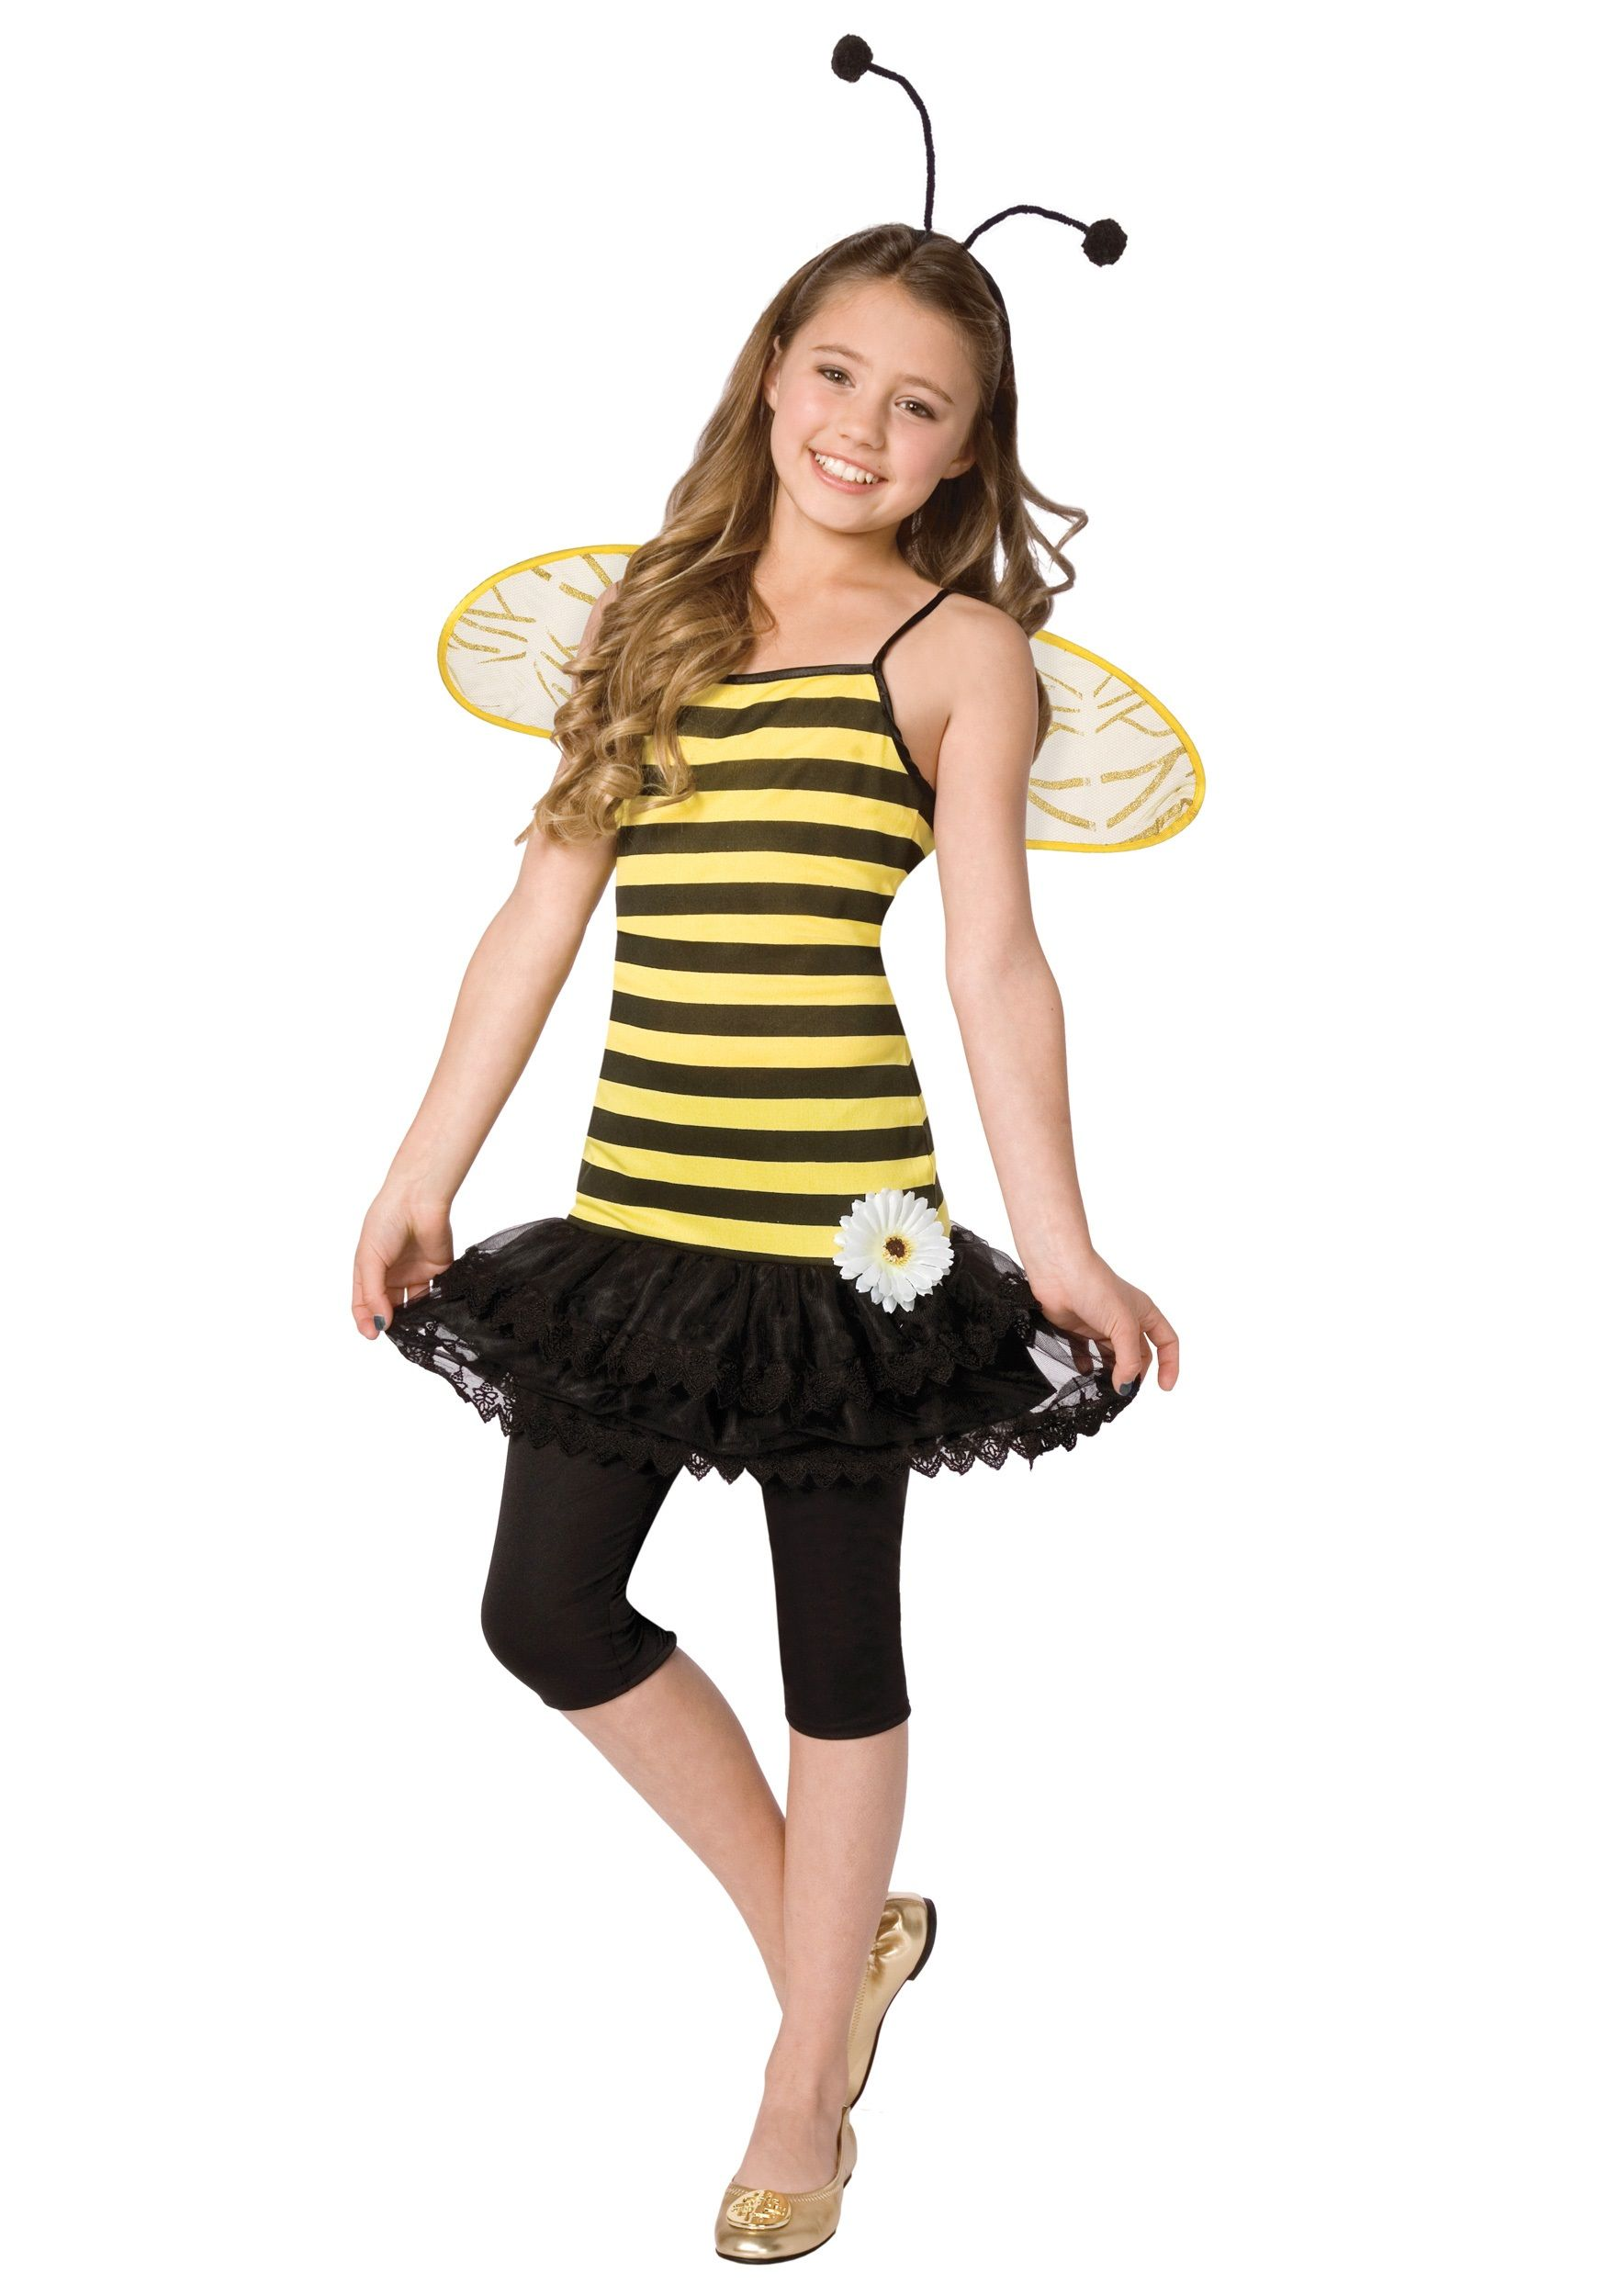 Pin by Be Simple Be Perfect on Fancy Dress | Pinterest | Tween ...